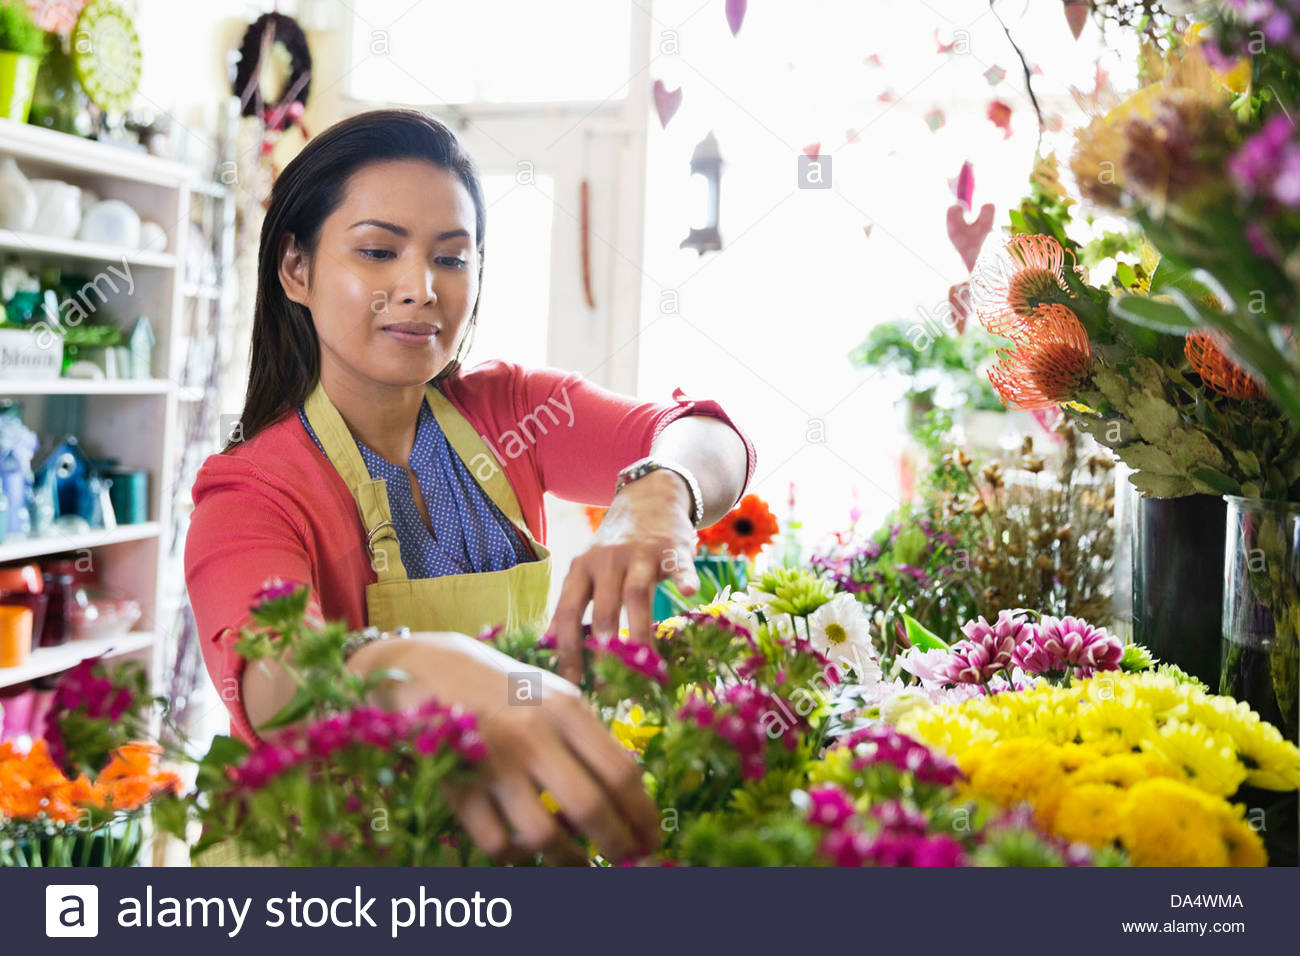 Female florist arranging flowers in flower shop - Stock Image